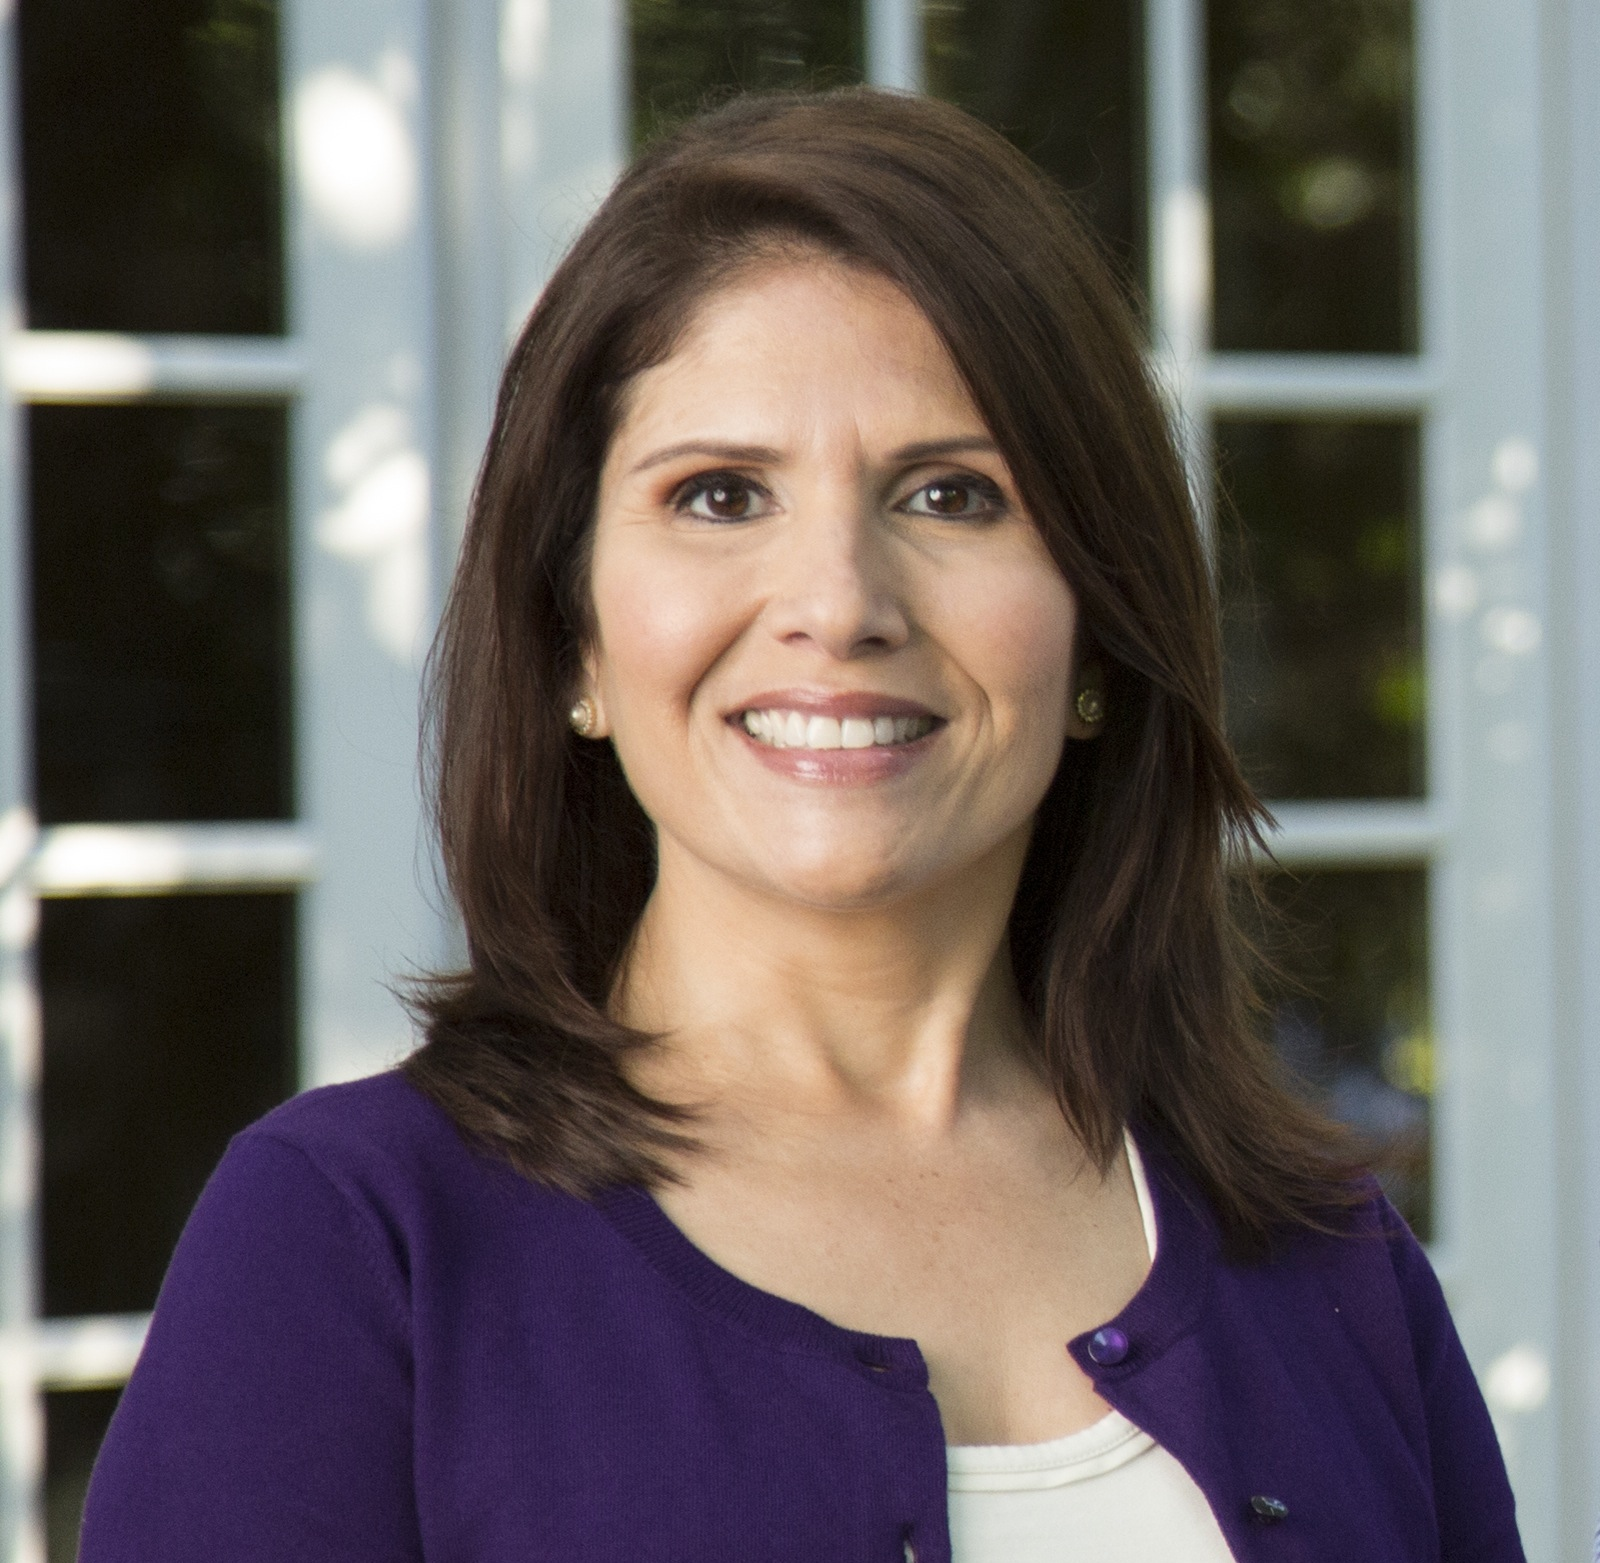 Evelyn Sanguinetti will be Illinois' first Hispanic lieutenant governor